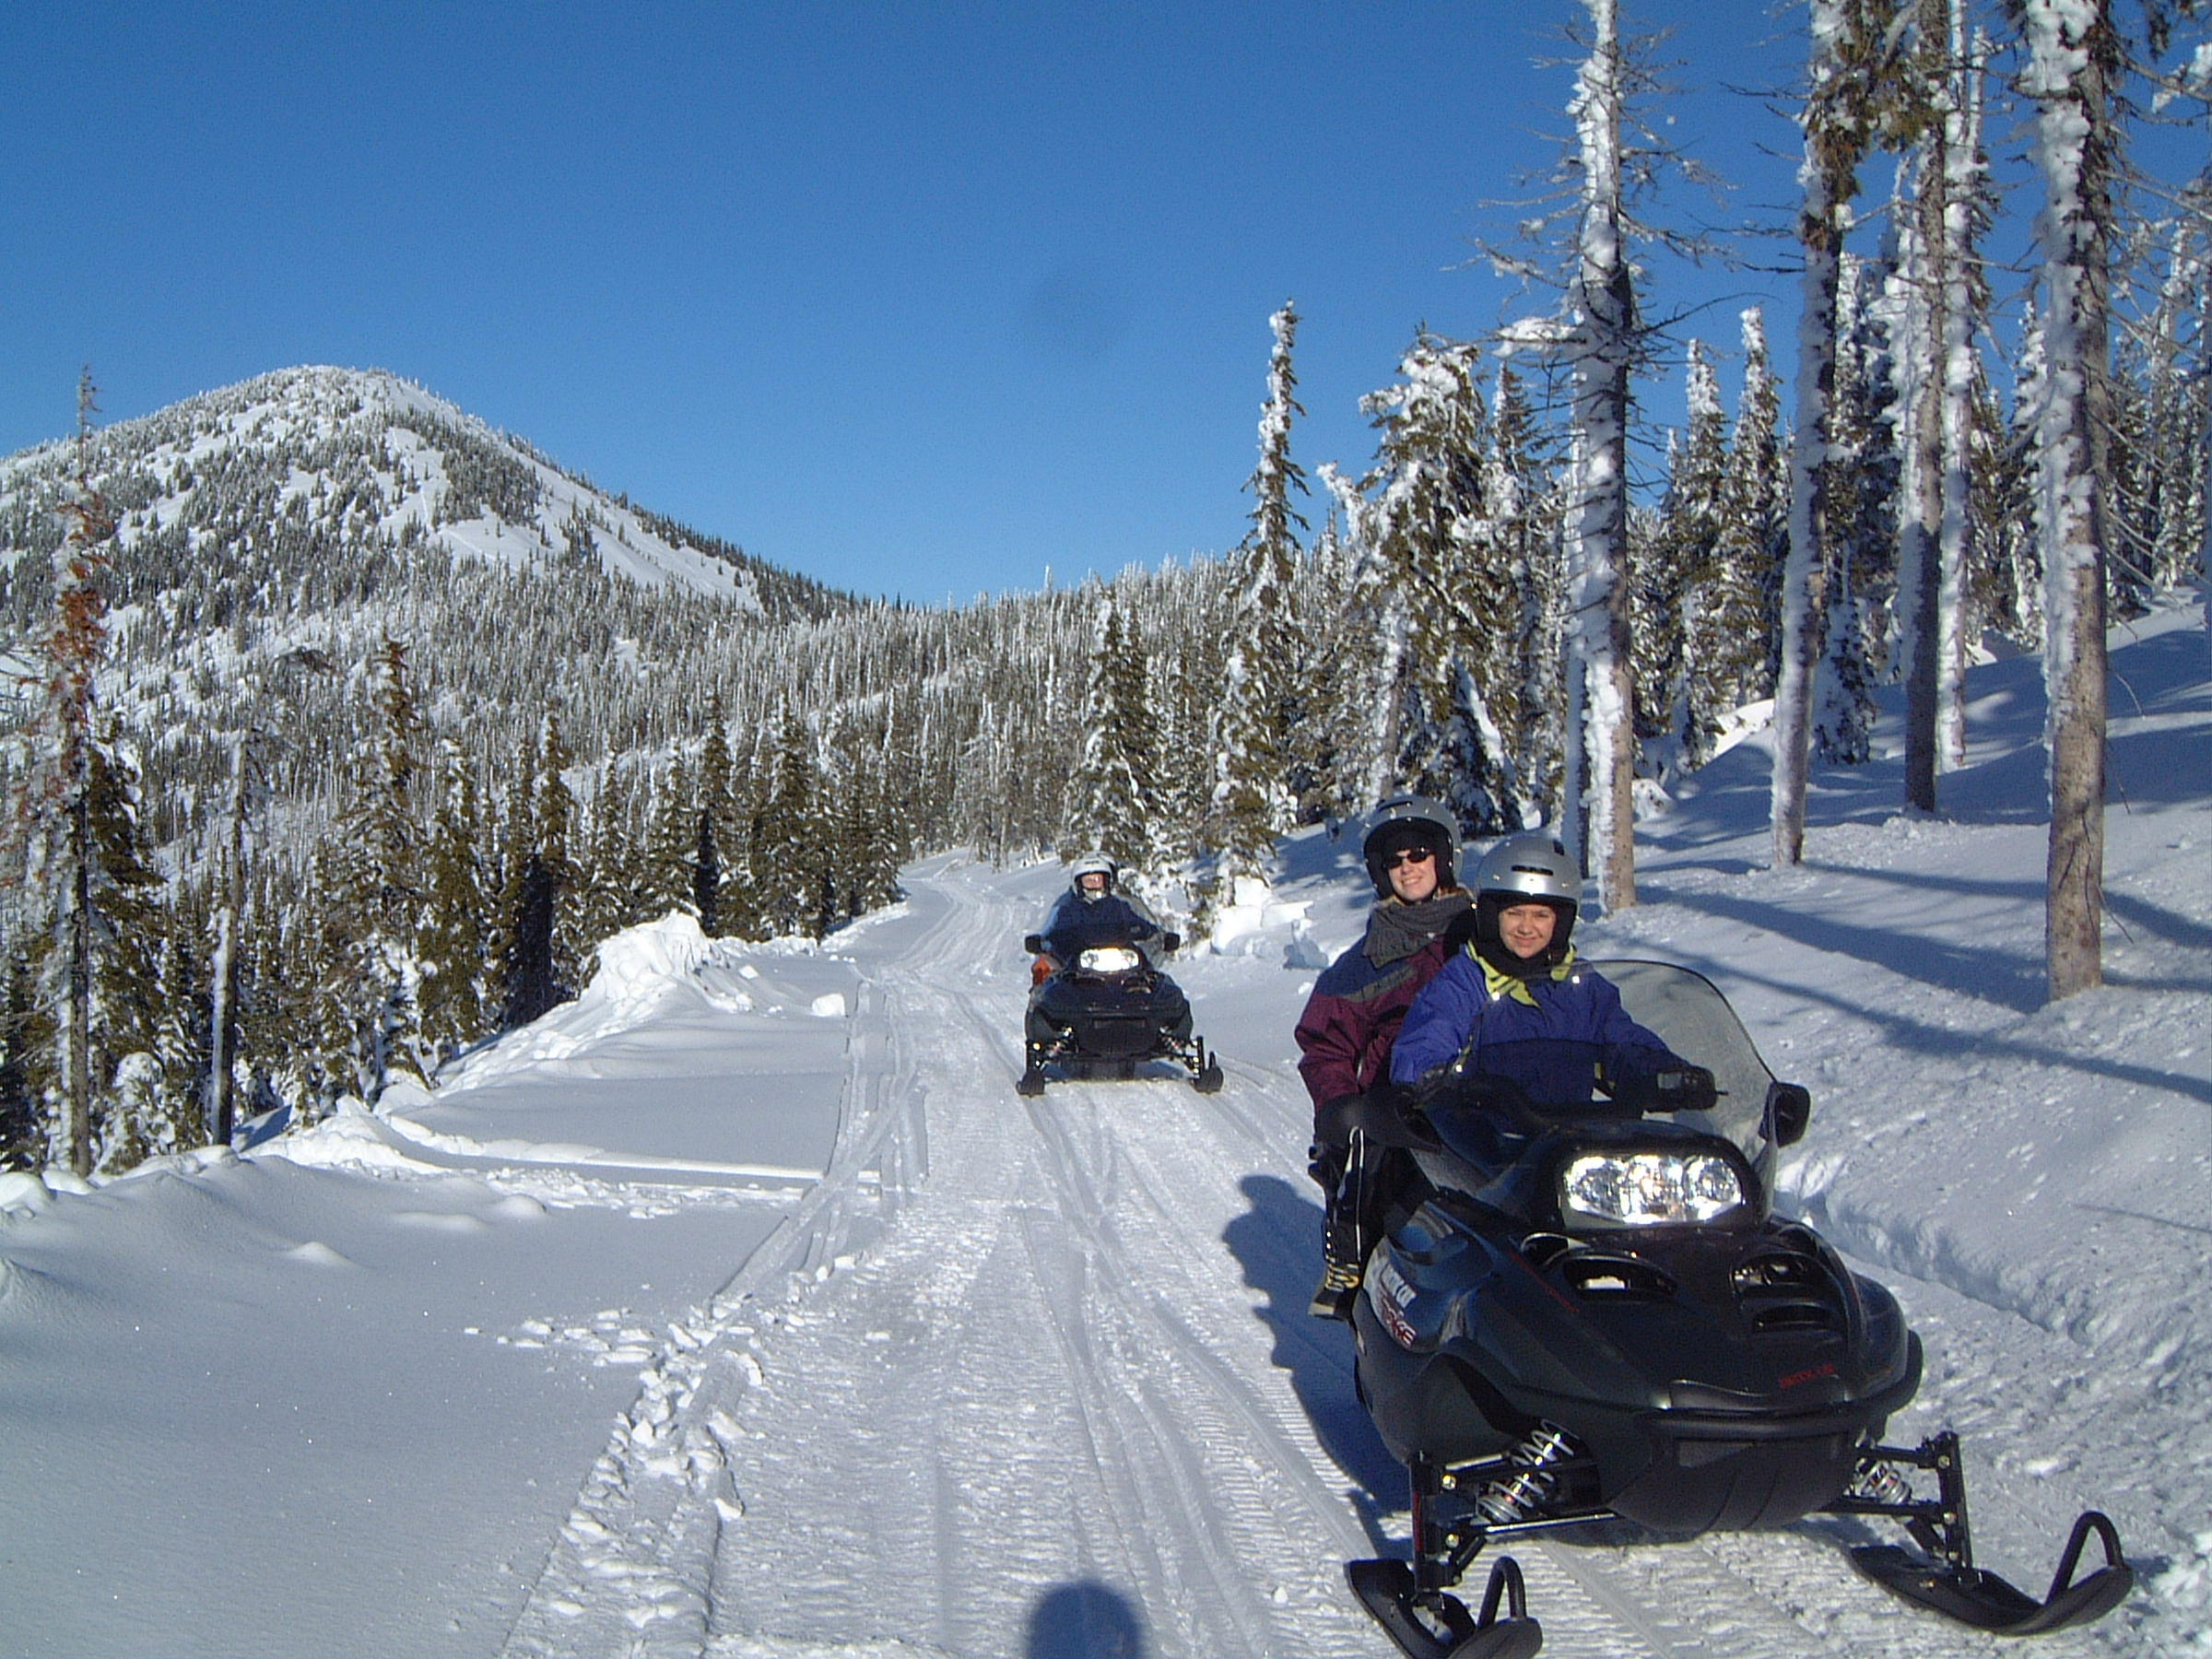 Idaho Education News >> Snowmobiling in Idaho: Good Medicine for those Winter Blues | The Spokesman-Review